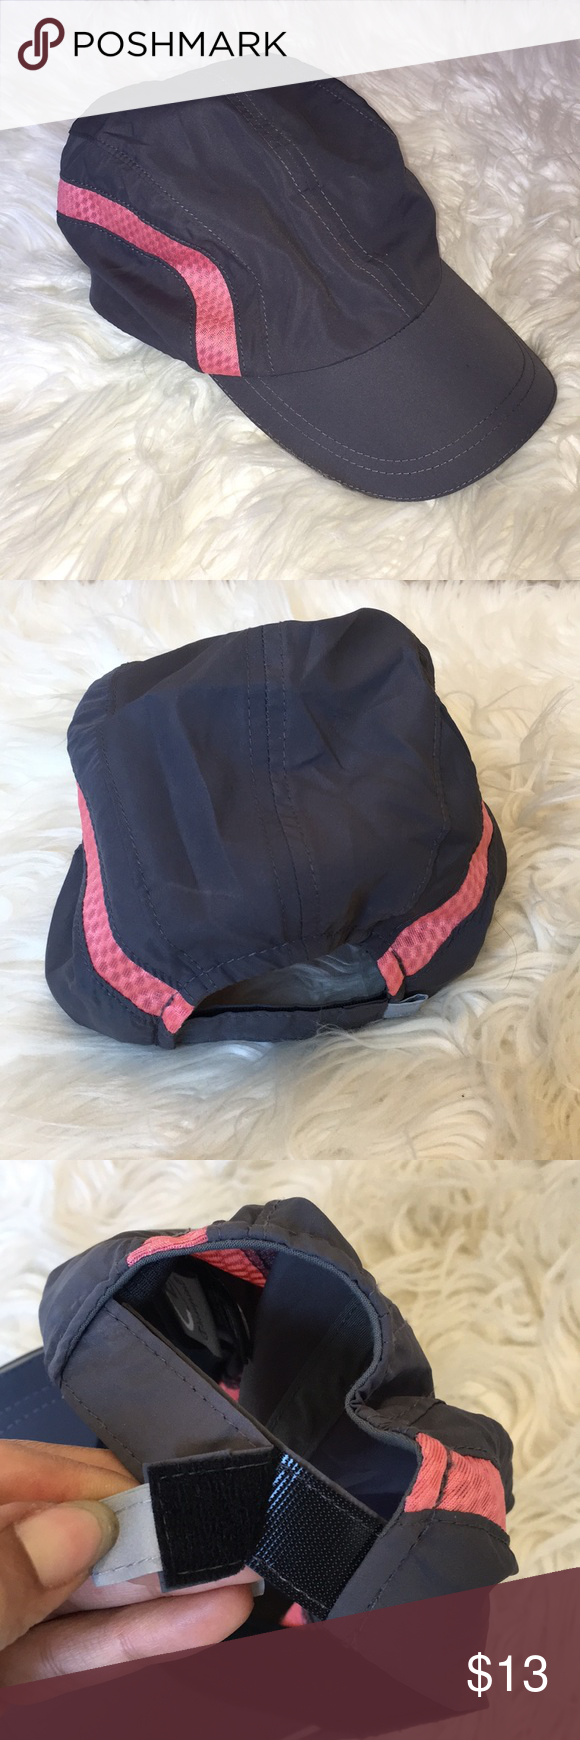 Adorable champion tennis hat It is in excellent condition no signs of wear  or damage Velcro s c36bbf54ab3